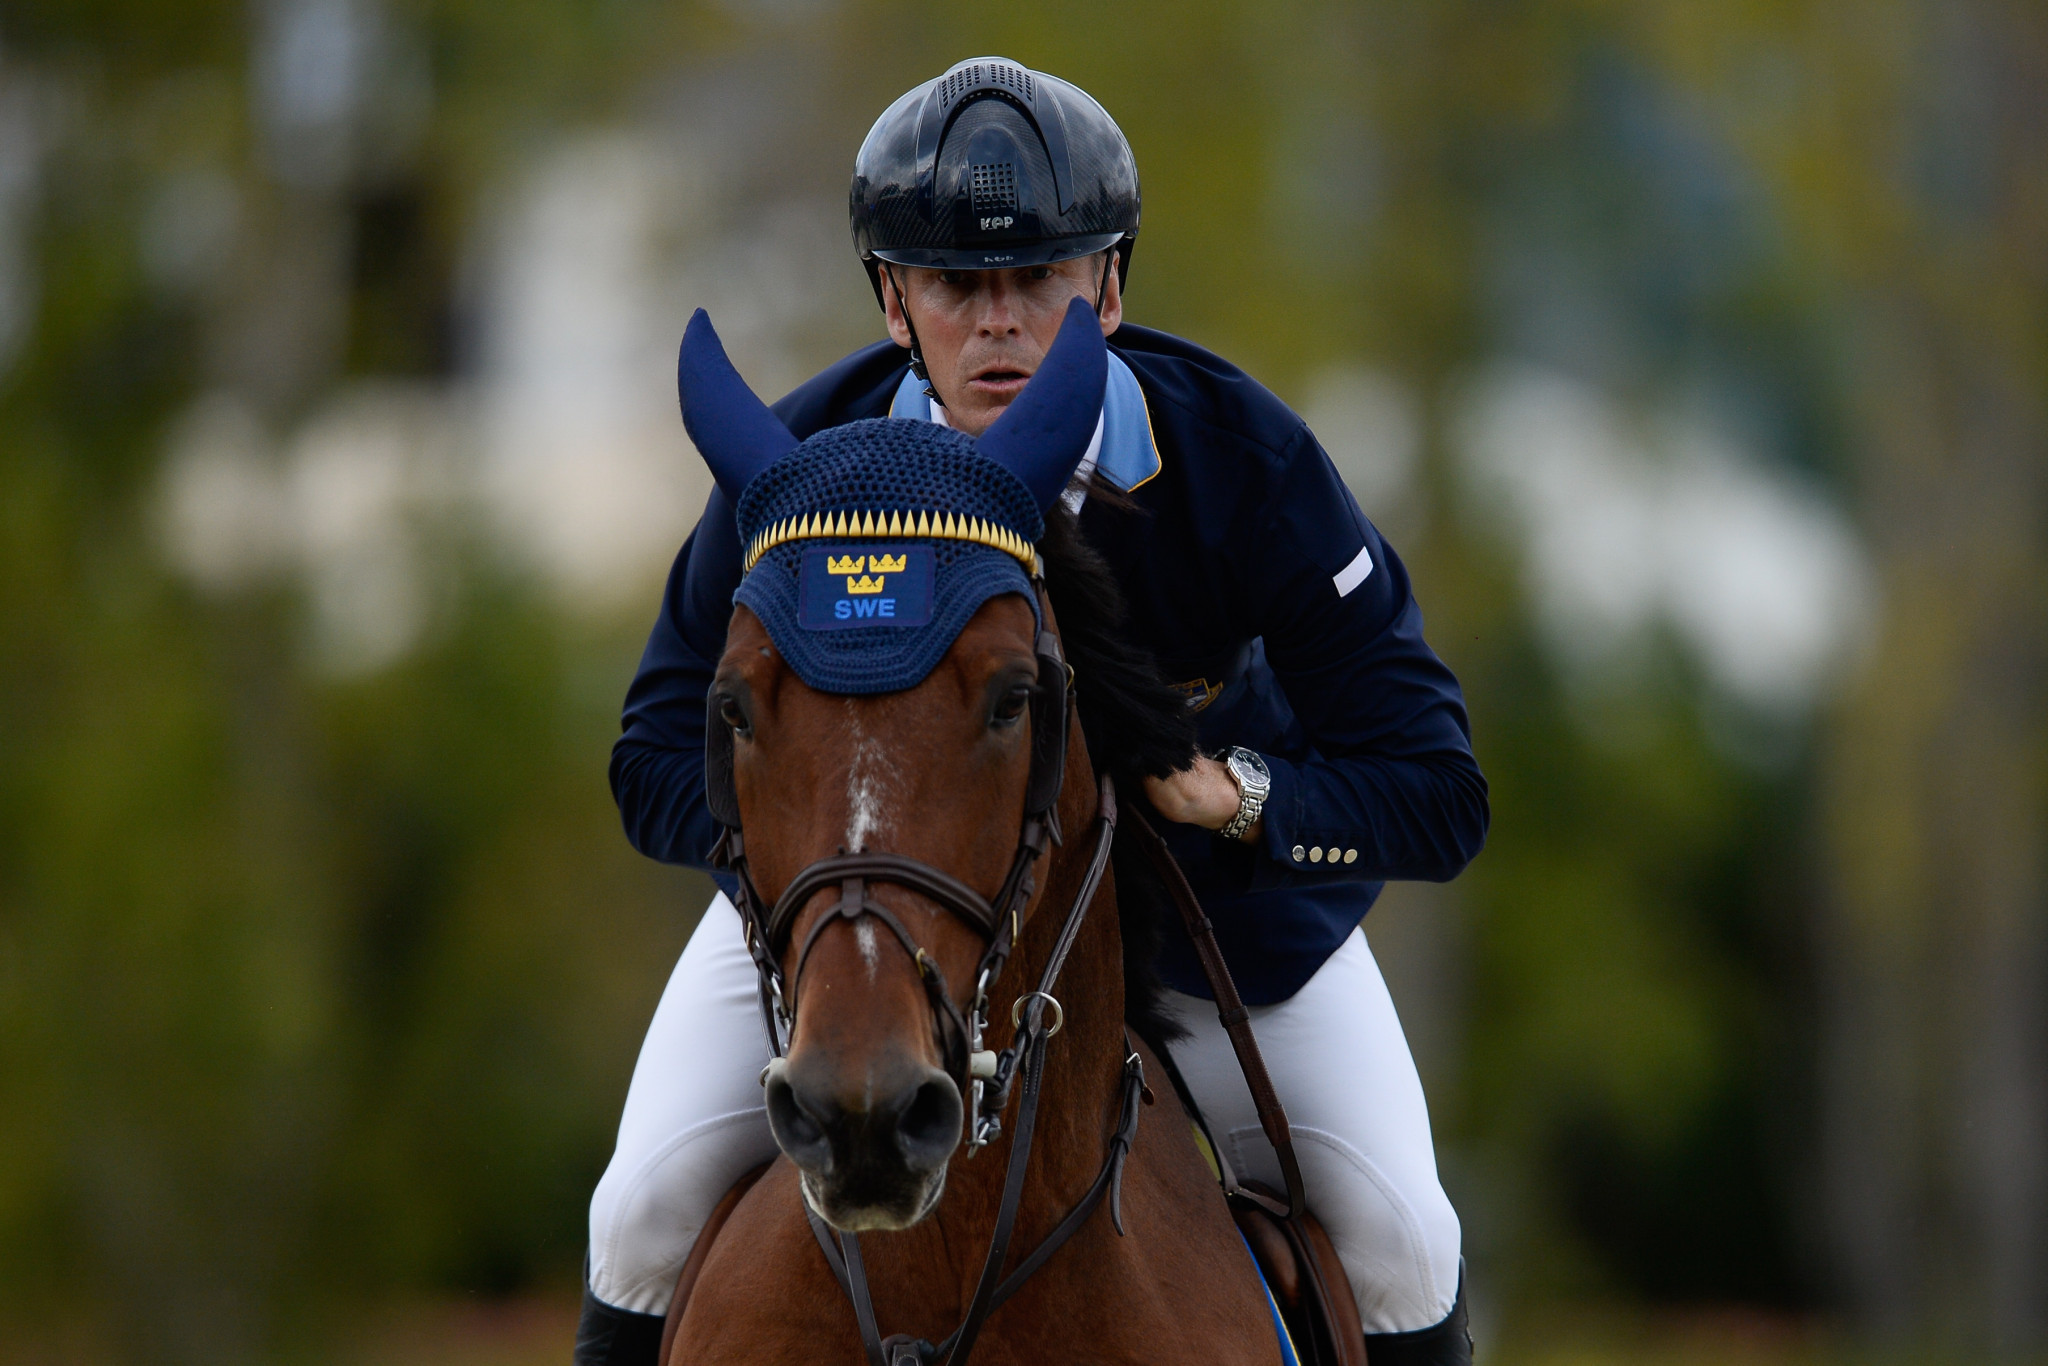 Peder Fredricson leads the standings after four events ©Getty Images